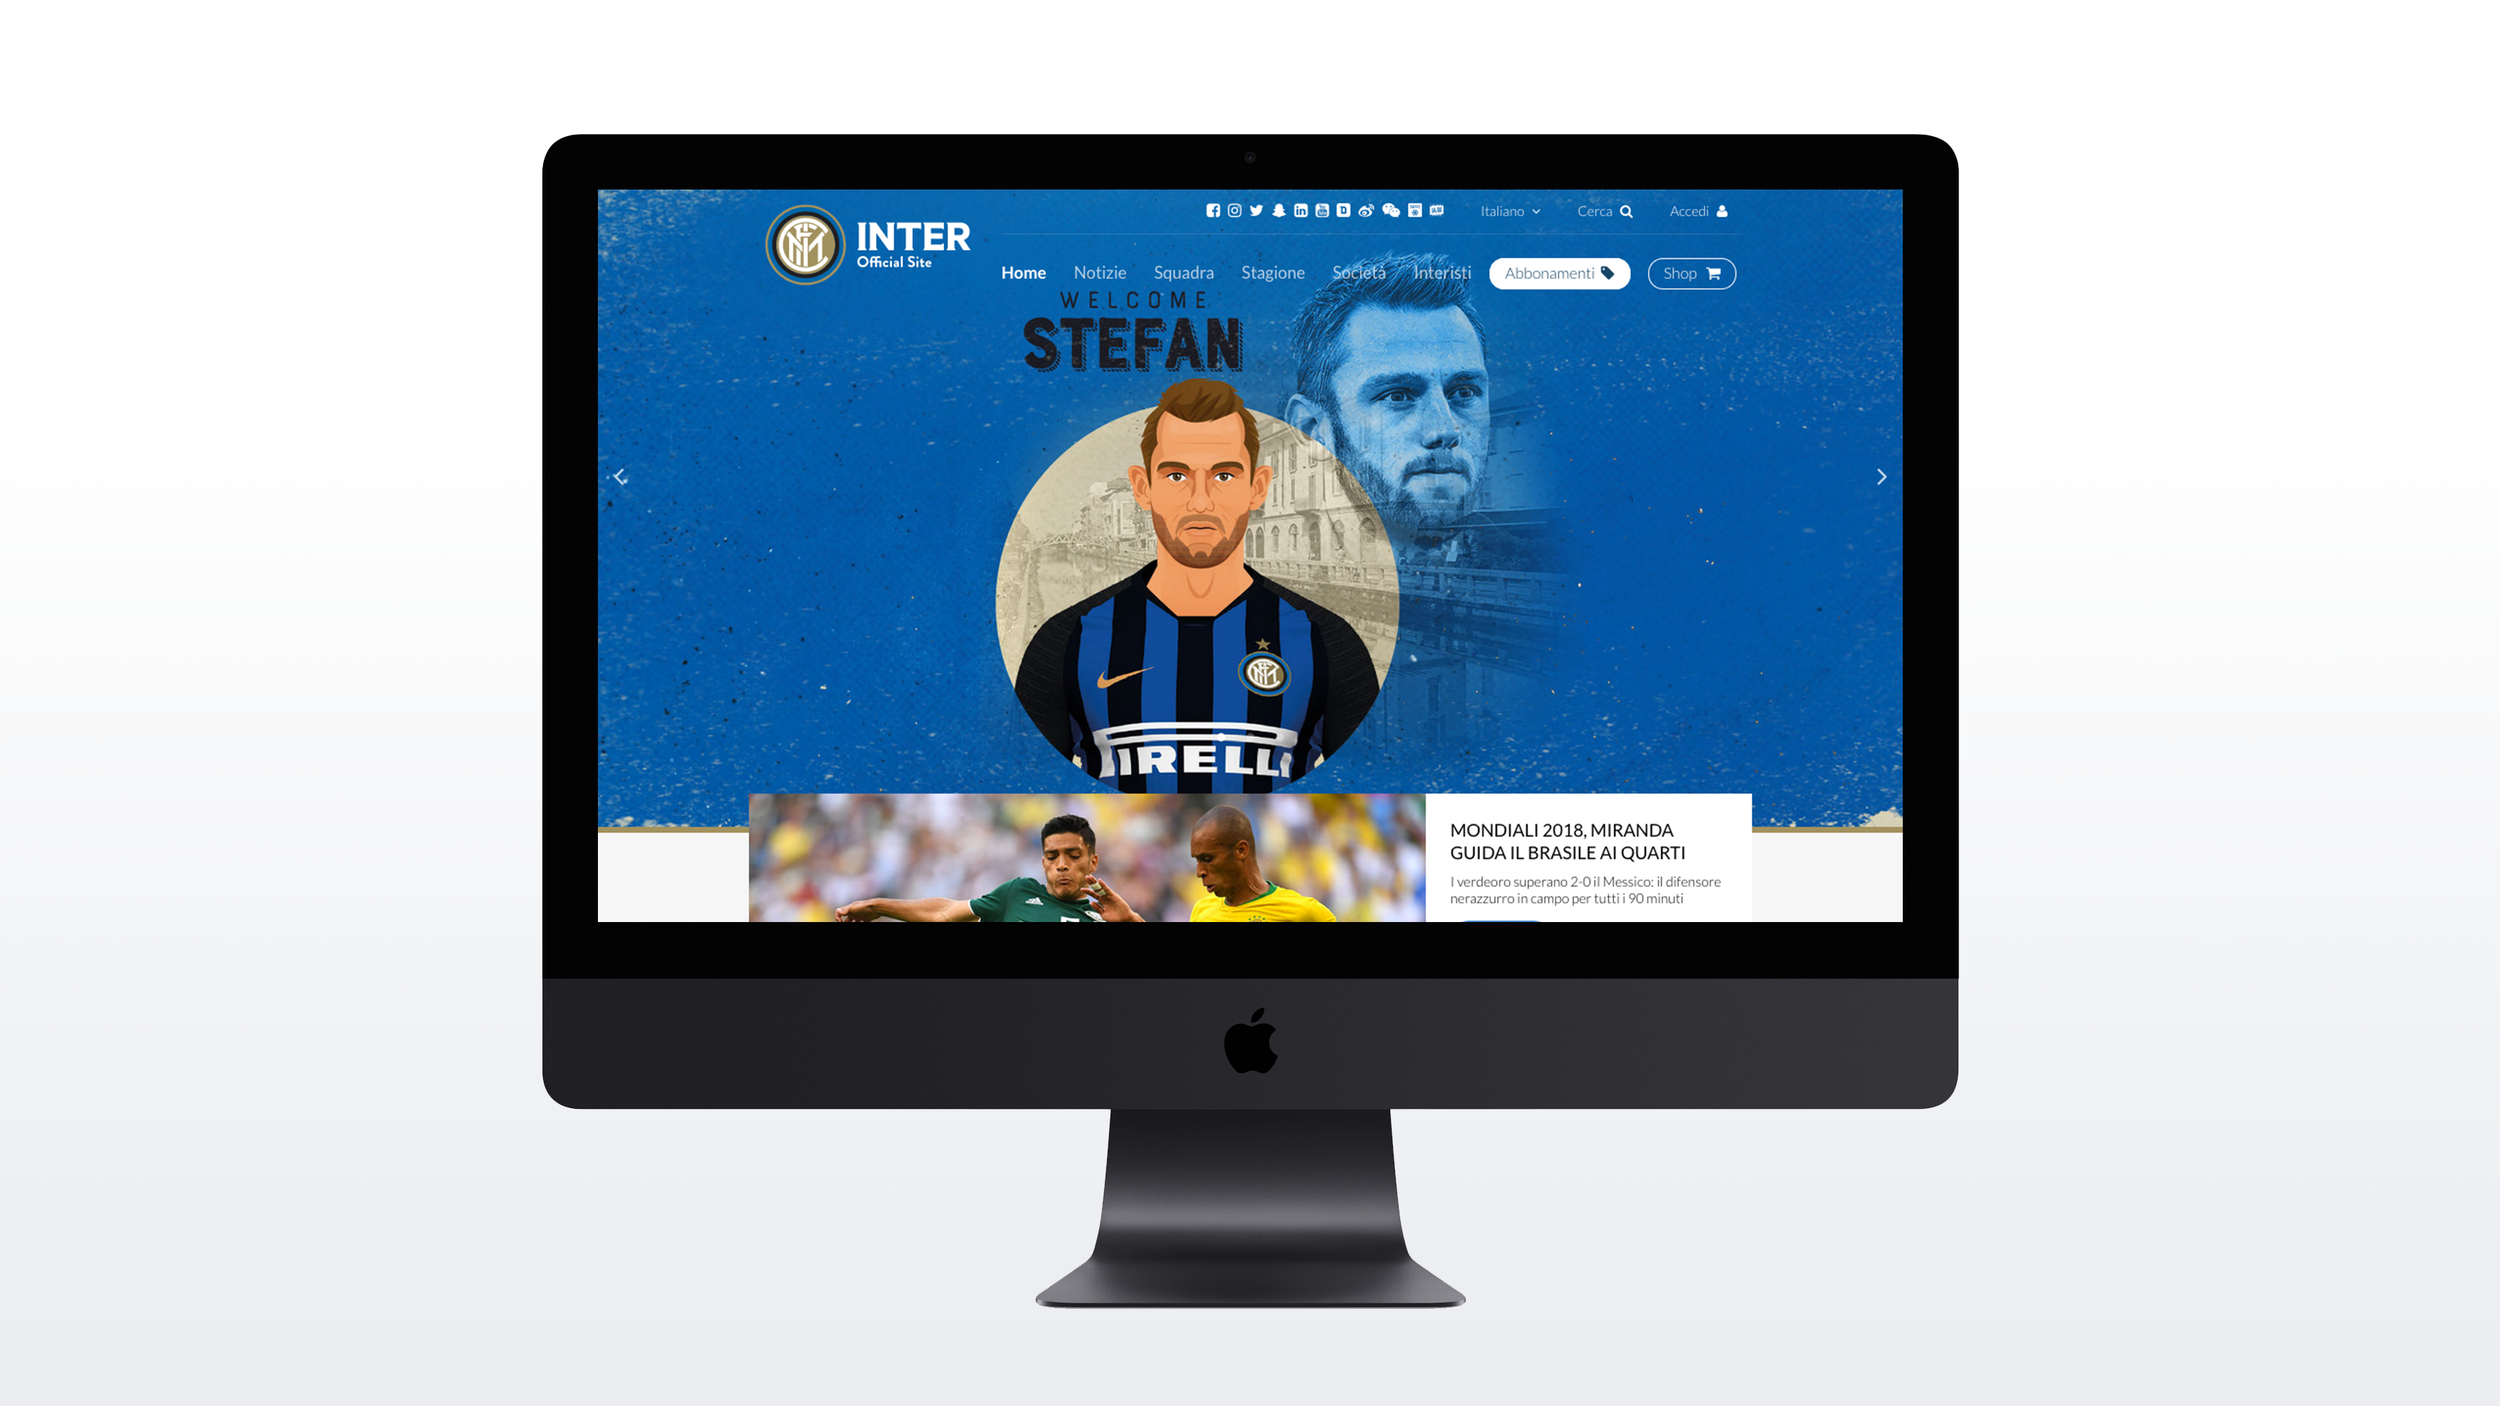 Inter Milan Official Website   Inter used the graphics provided to lead head up their website each time a new signing was announced. With millions of fans around the world, it was a creative and unique way to break the news and show new players wearing the famous blue and black shirt, even before they had worn it in real life.